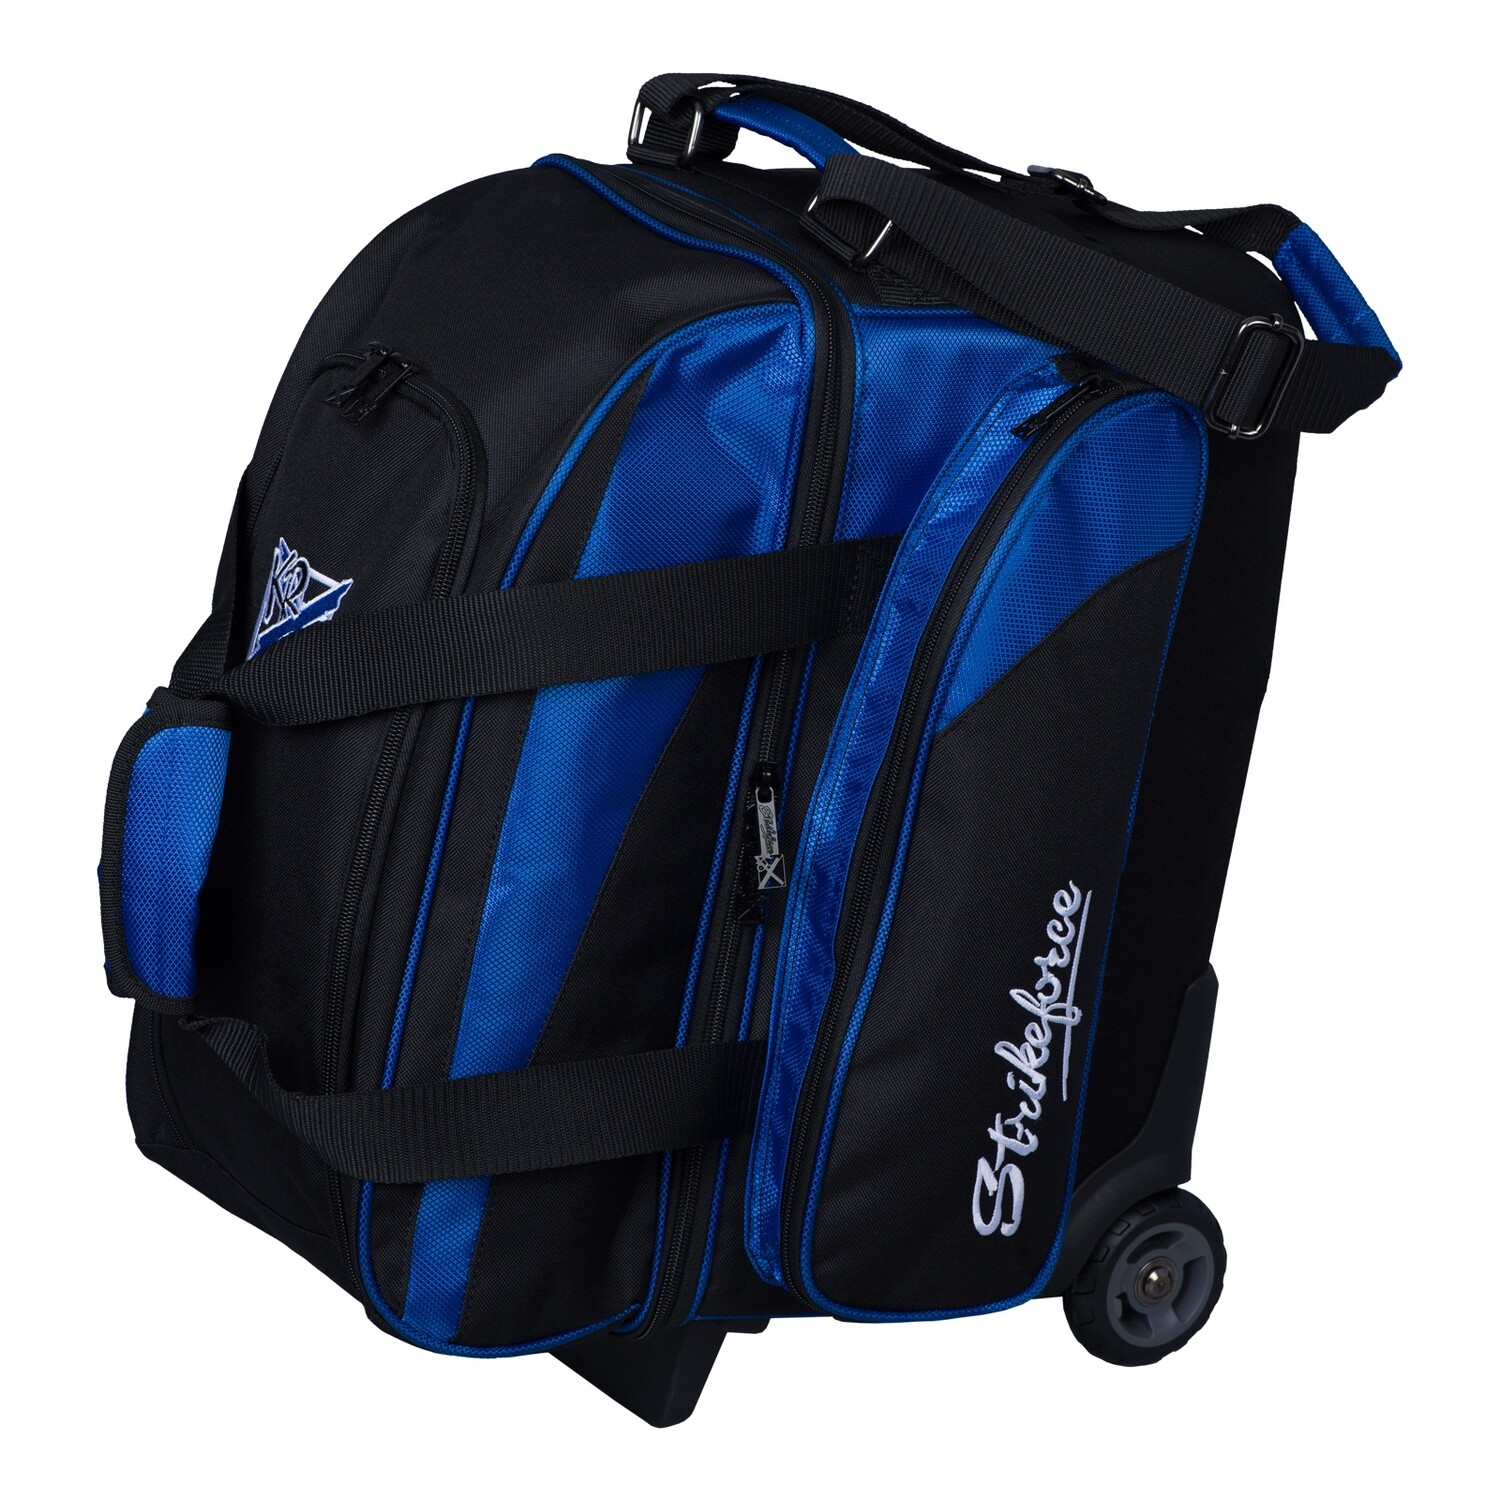 KR Strikeforce Cruiser Locker 2 Ball Roller Bowling Bag